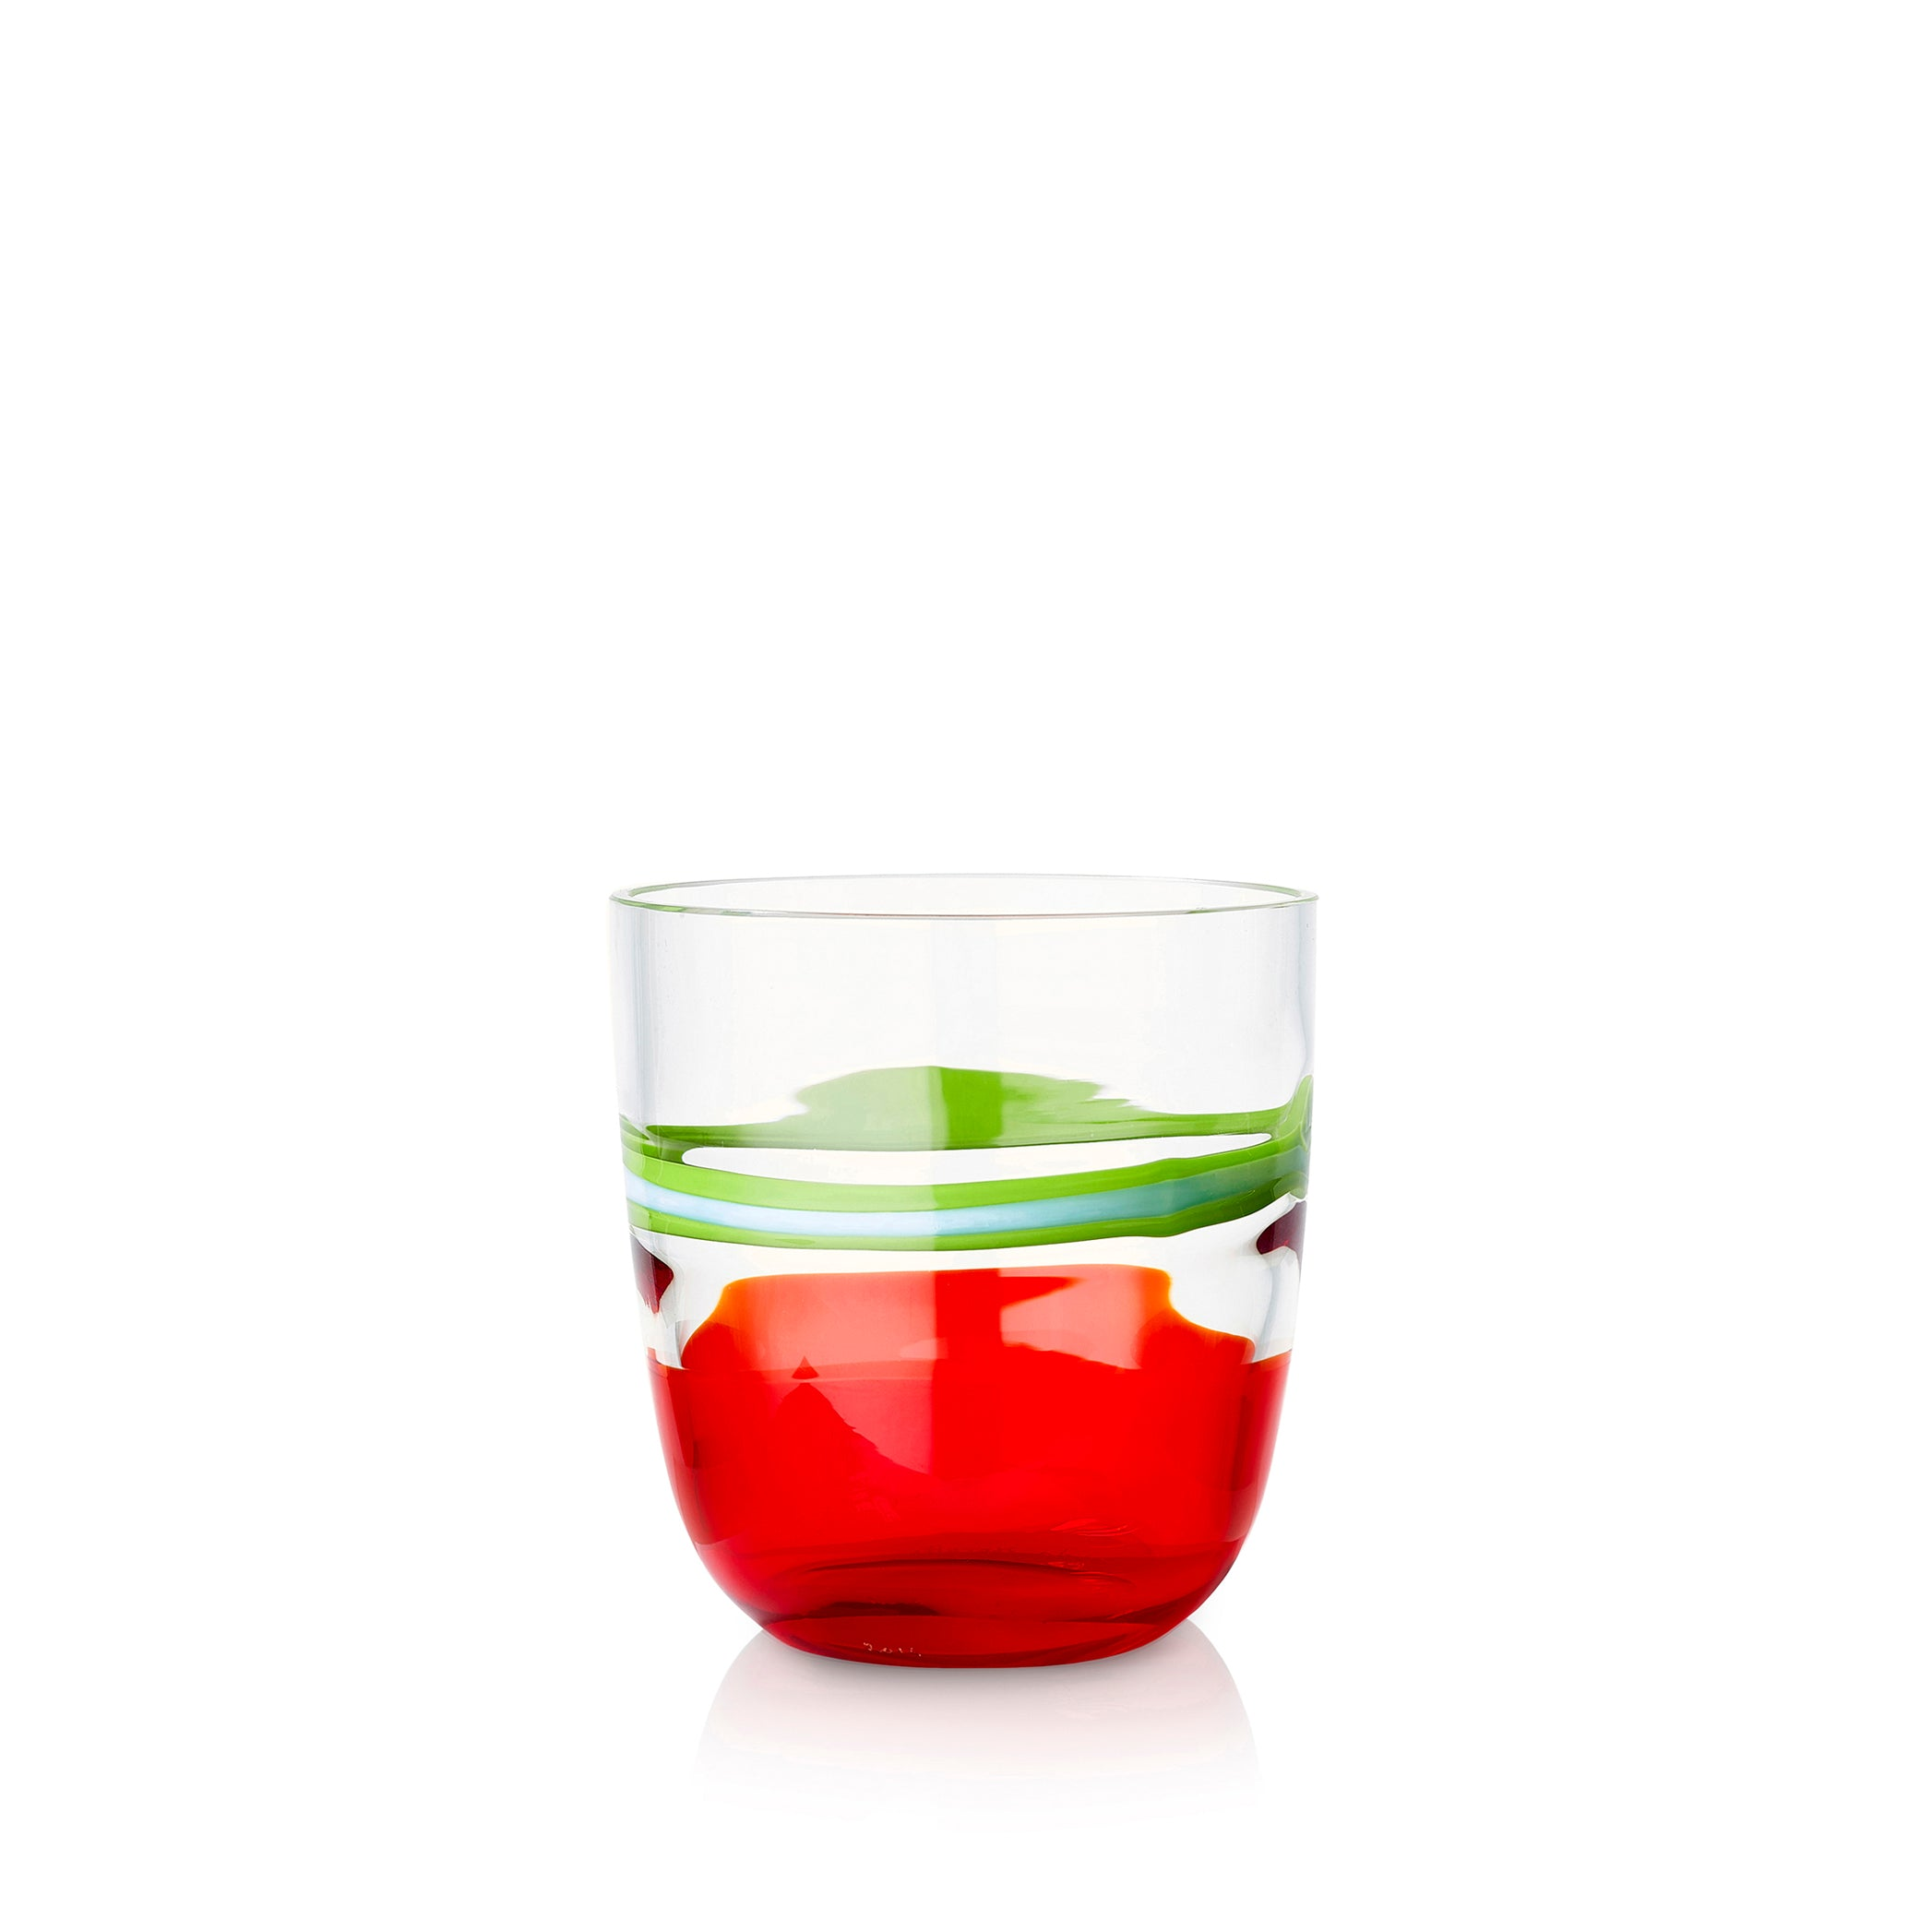 Set of Eight Handblown Colour Block Glass Tumblers in Avocado Green & Red